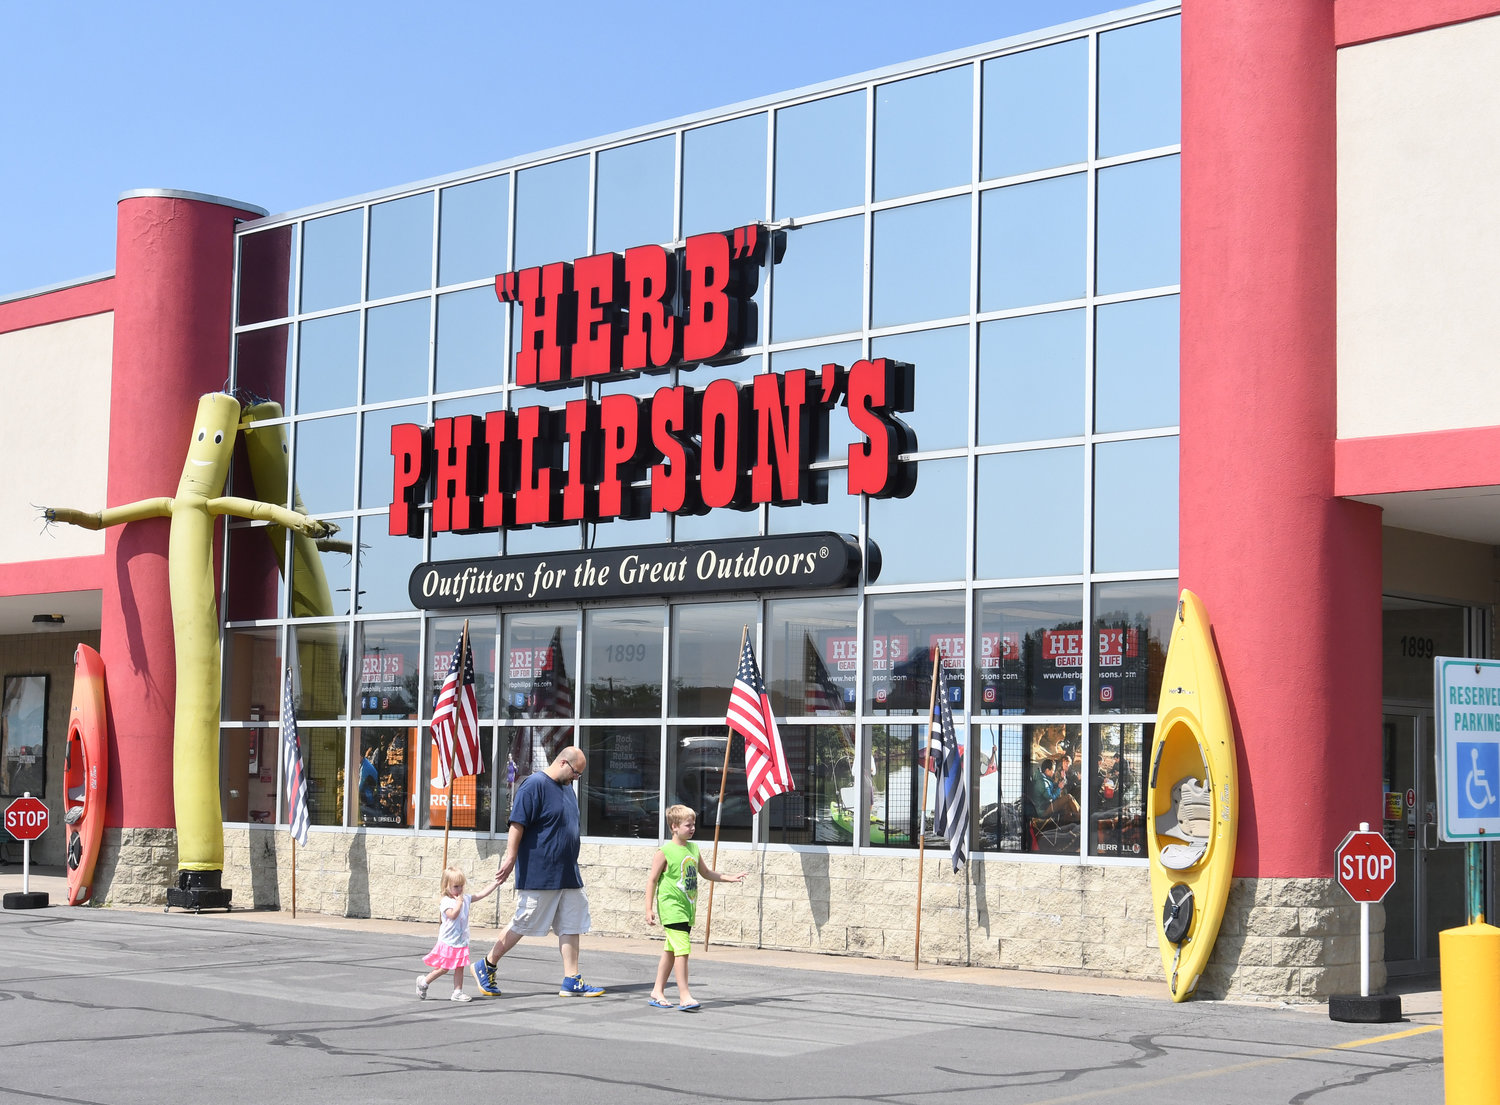 NO BIDDERS — There were no bids in an auction for sporting goods retailer Herb Philipson's in a proceeding Wednesday in U.S. Bankruptcy Court in Utica. No further court dates have been scheduled yet in the case.